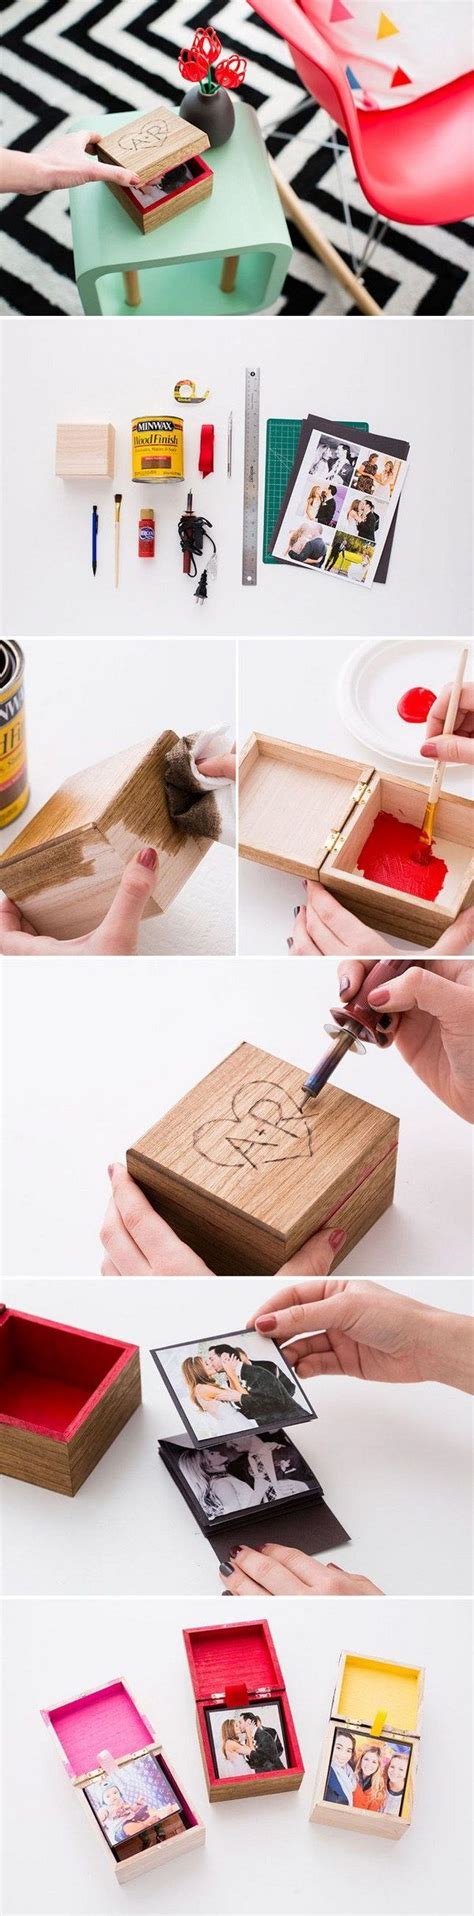 diy gifts for him 25 diy gifts for him with lots of tutorials tutorials